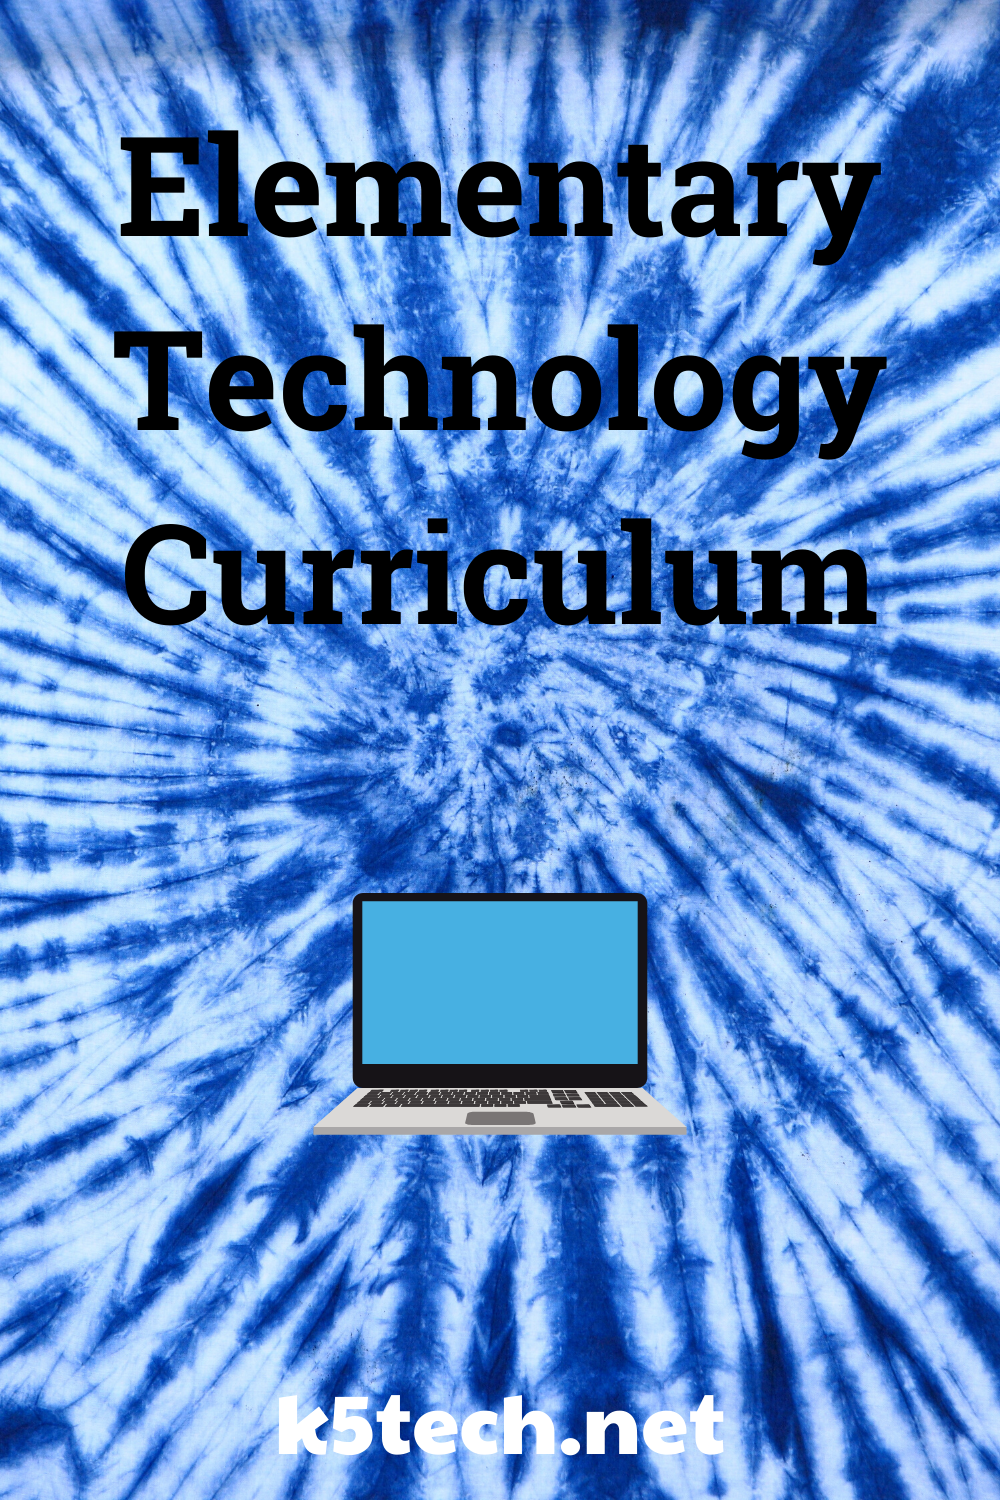 The K5tech.net Elementary Technology Curriculum includes over 200 lessons and activities for grades K-5 that will save you so much time coming up with what to do in the computer lab.  It is ideal for a technology teacher, media specialist, tech facilitator, or grade level teachers who want tech savvy students. Nearly all of the work is done for you!  Keep reading on this page to learn about everything that is included. There is even a full walkthrough video below!